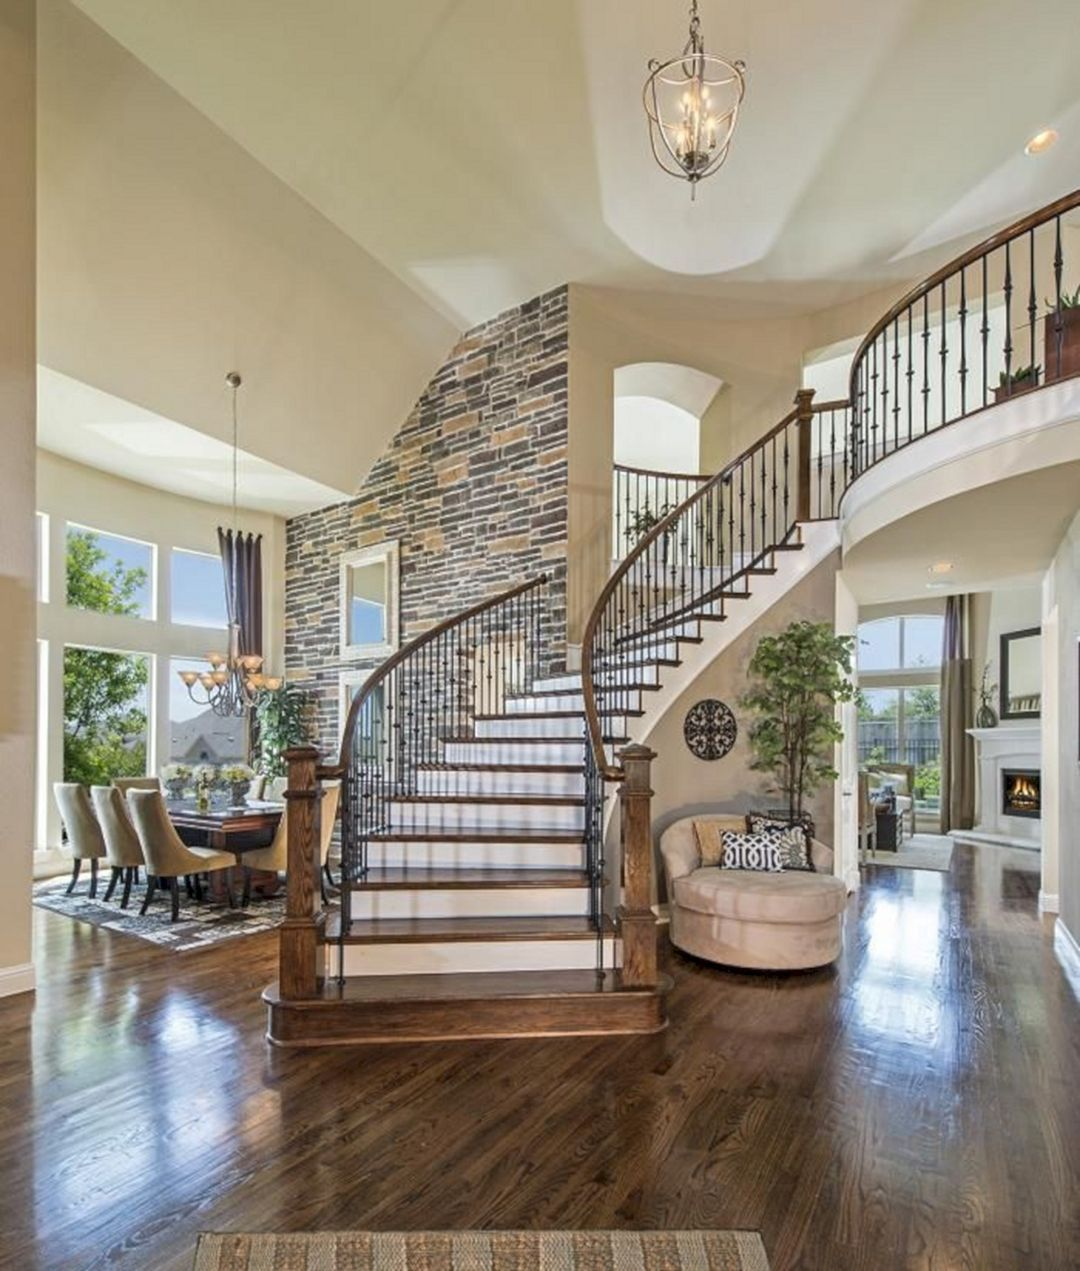 Short Stairs Ideas: 35+ Amazing Staircase Design Ideas For Small Home